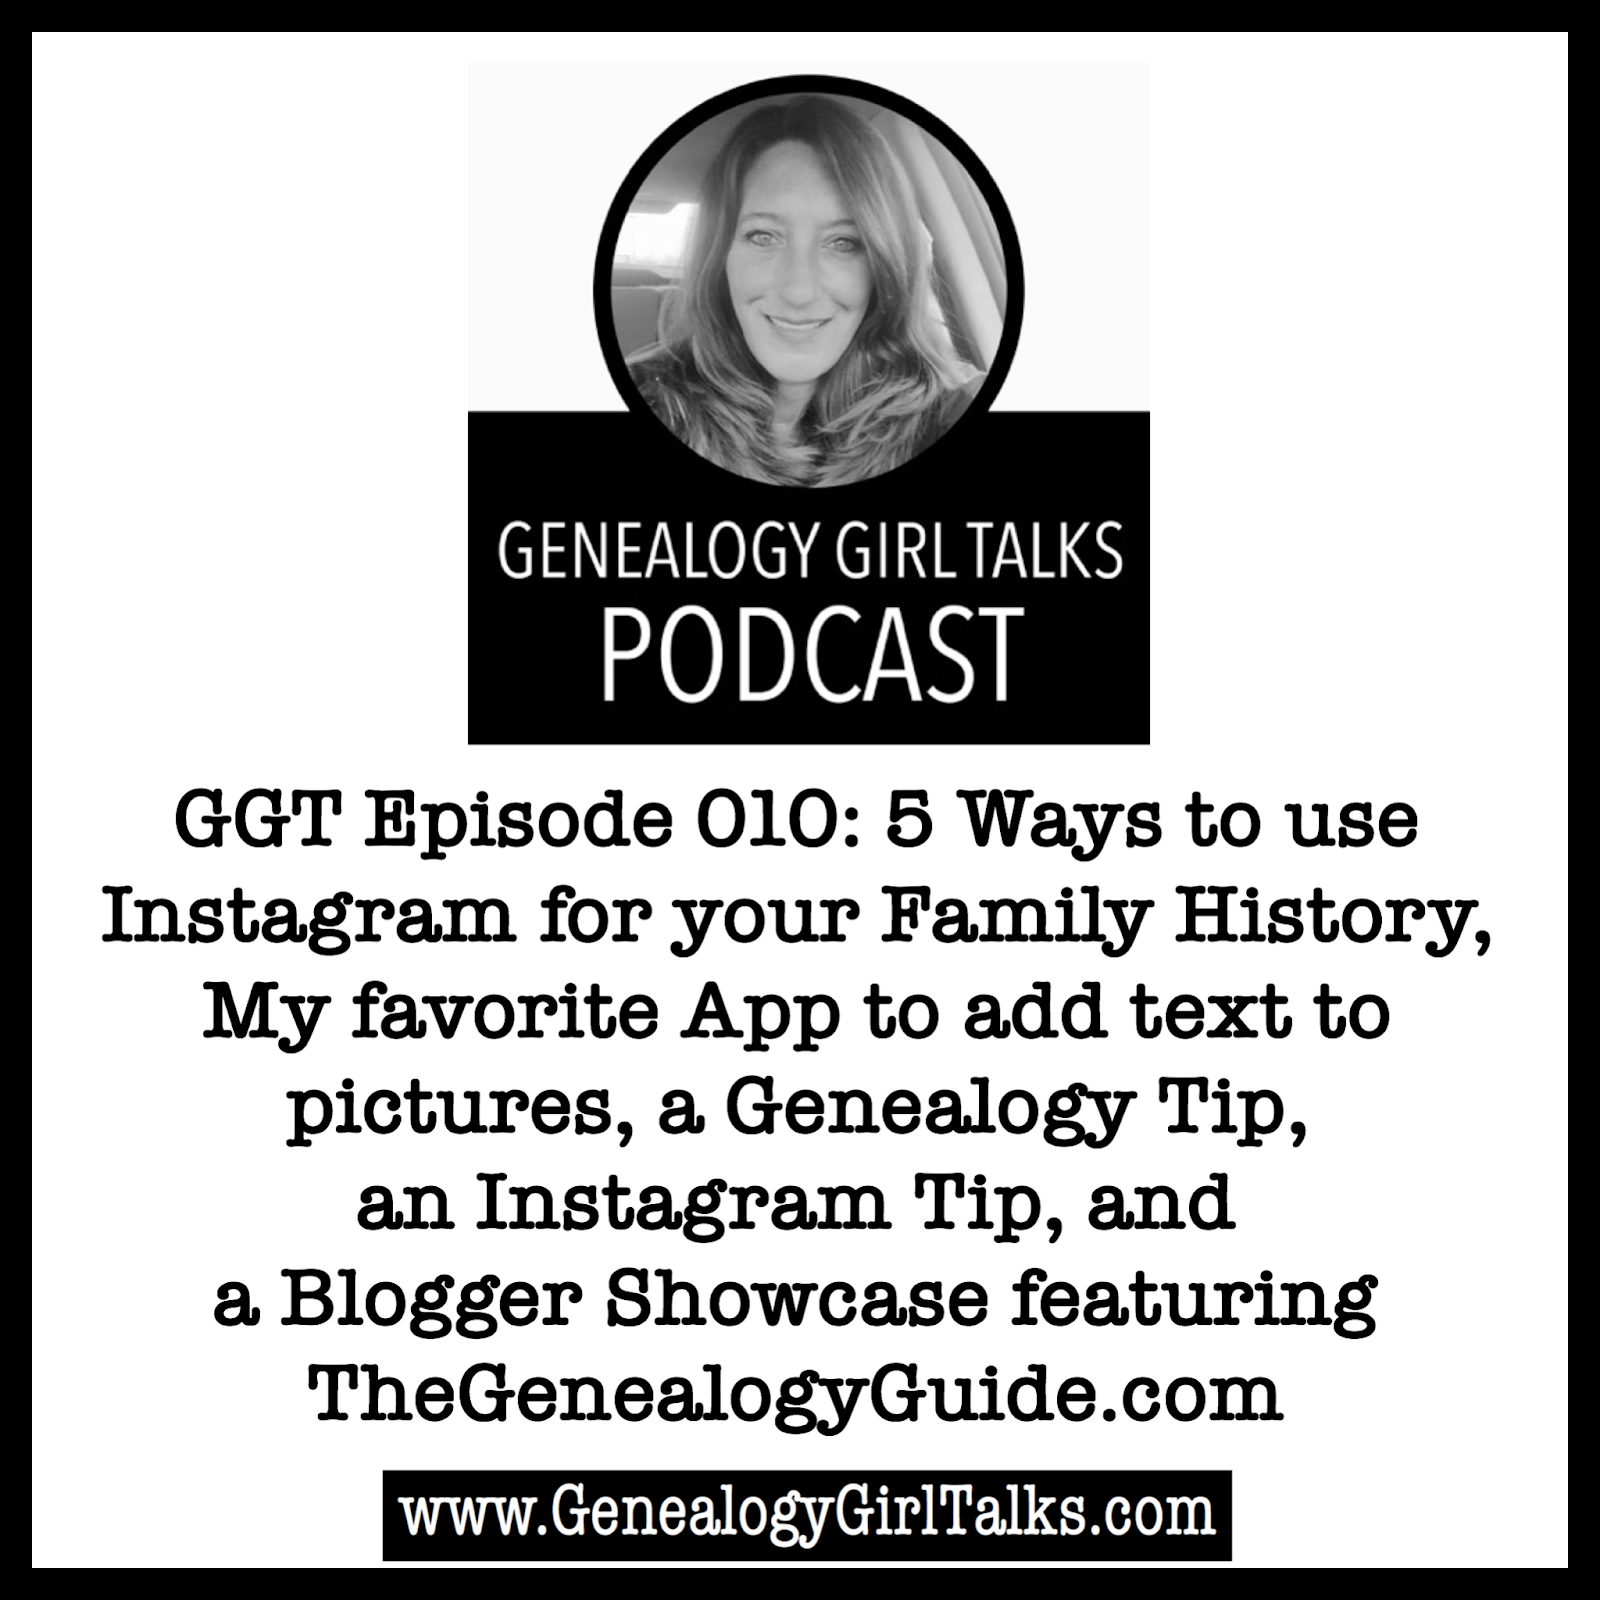 GGT 010: 5 Ways to Use Instagram for Your Family History & My Favorite App Genealogy Blogger Showcase with GenealogyGirlTalks.com